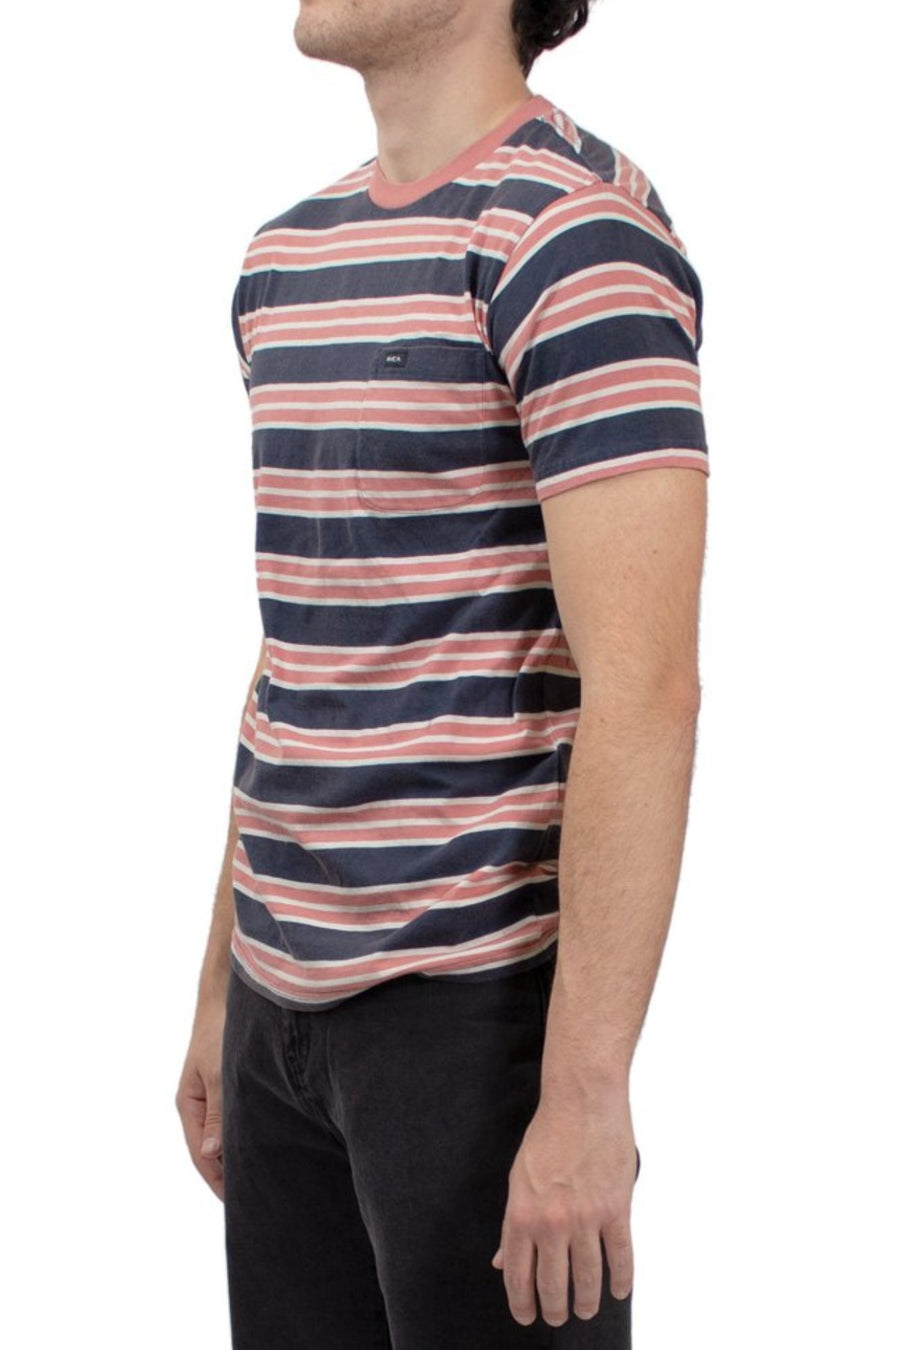 RVCA Lucas Striped Knit T-Shirt - Federal Blue